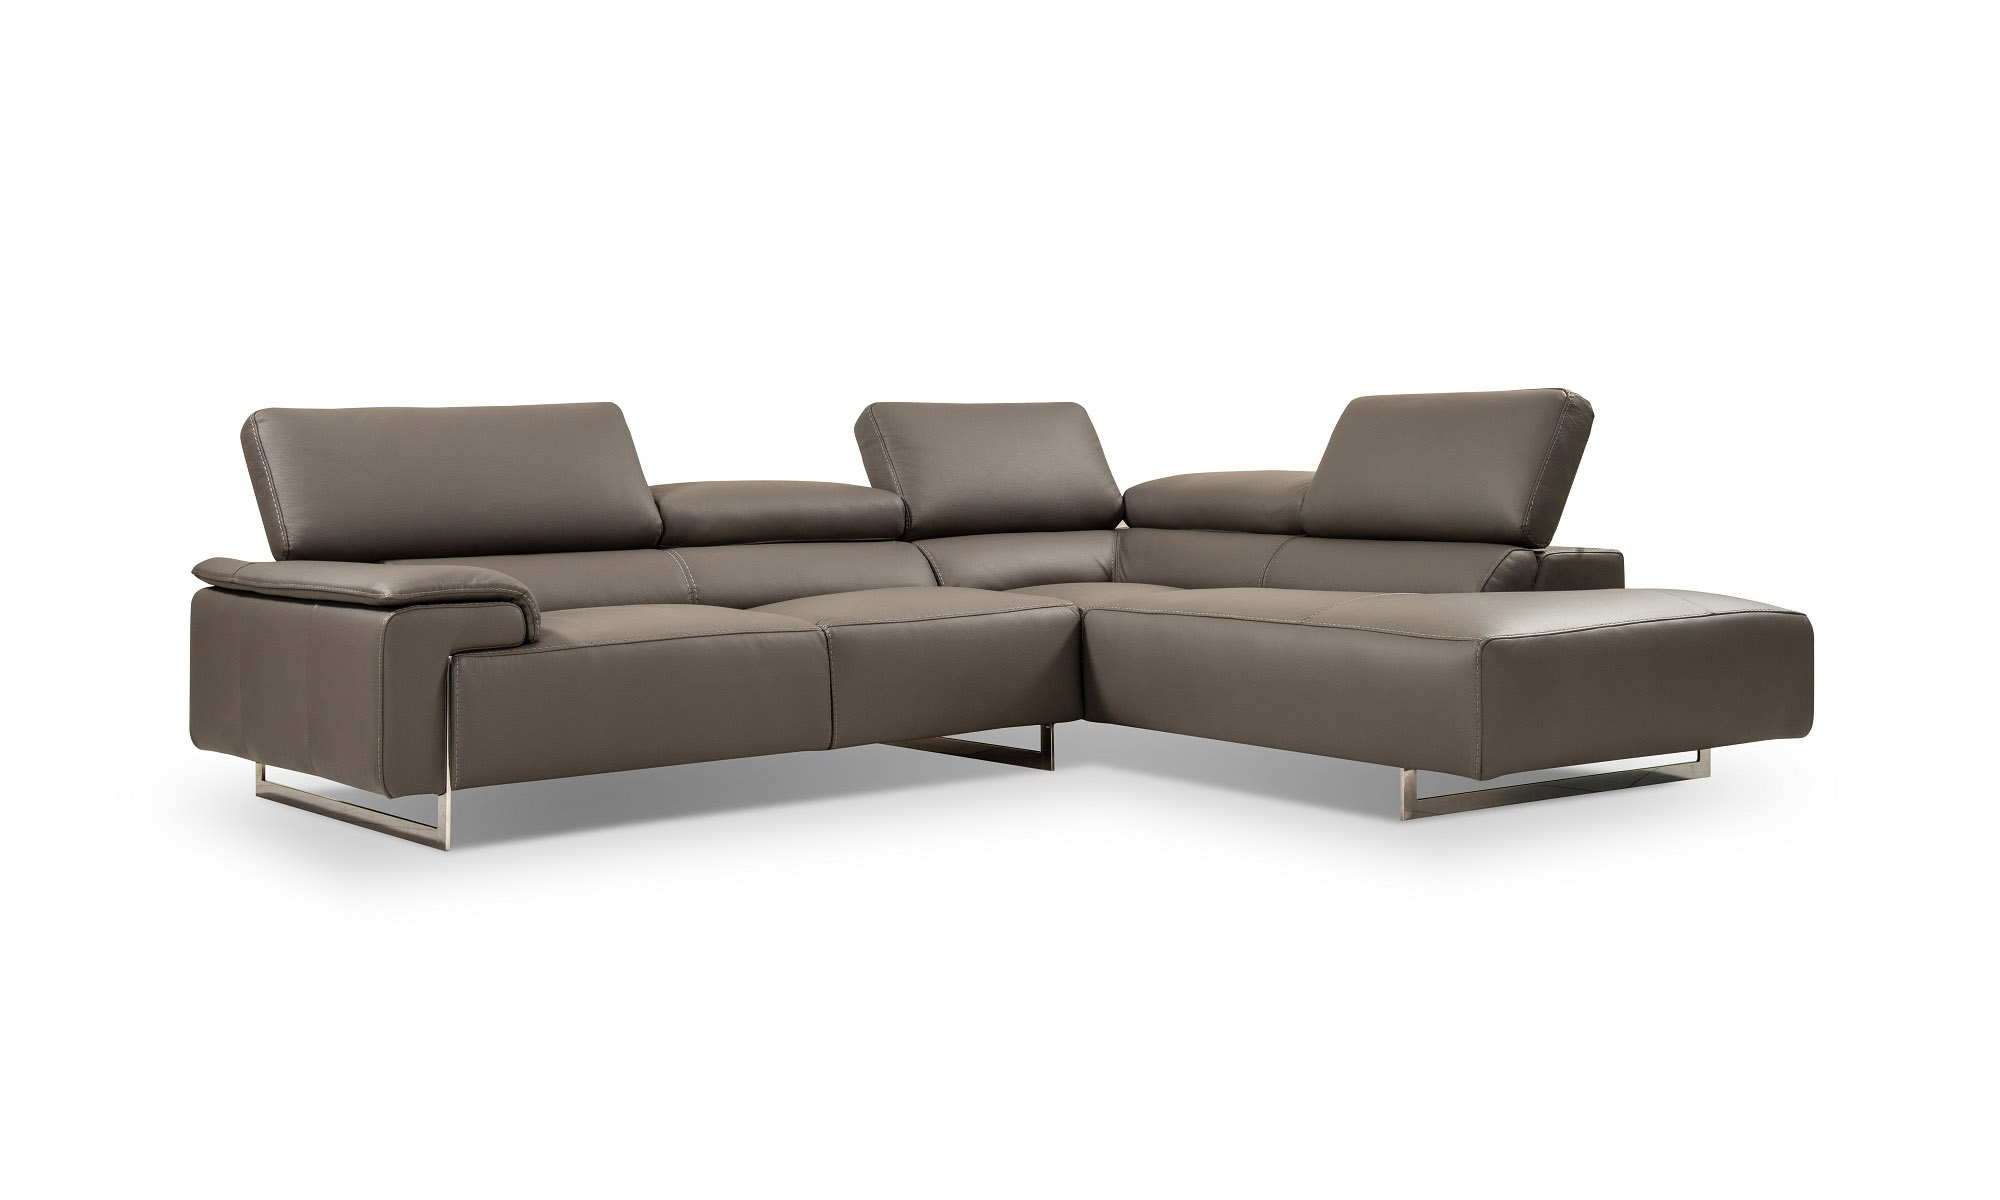 Classic Leather Sectional Sofa Upholstered In Italian Leather San ...